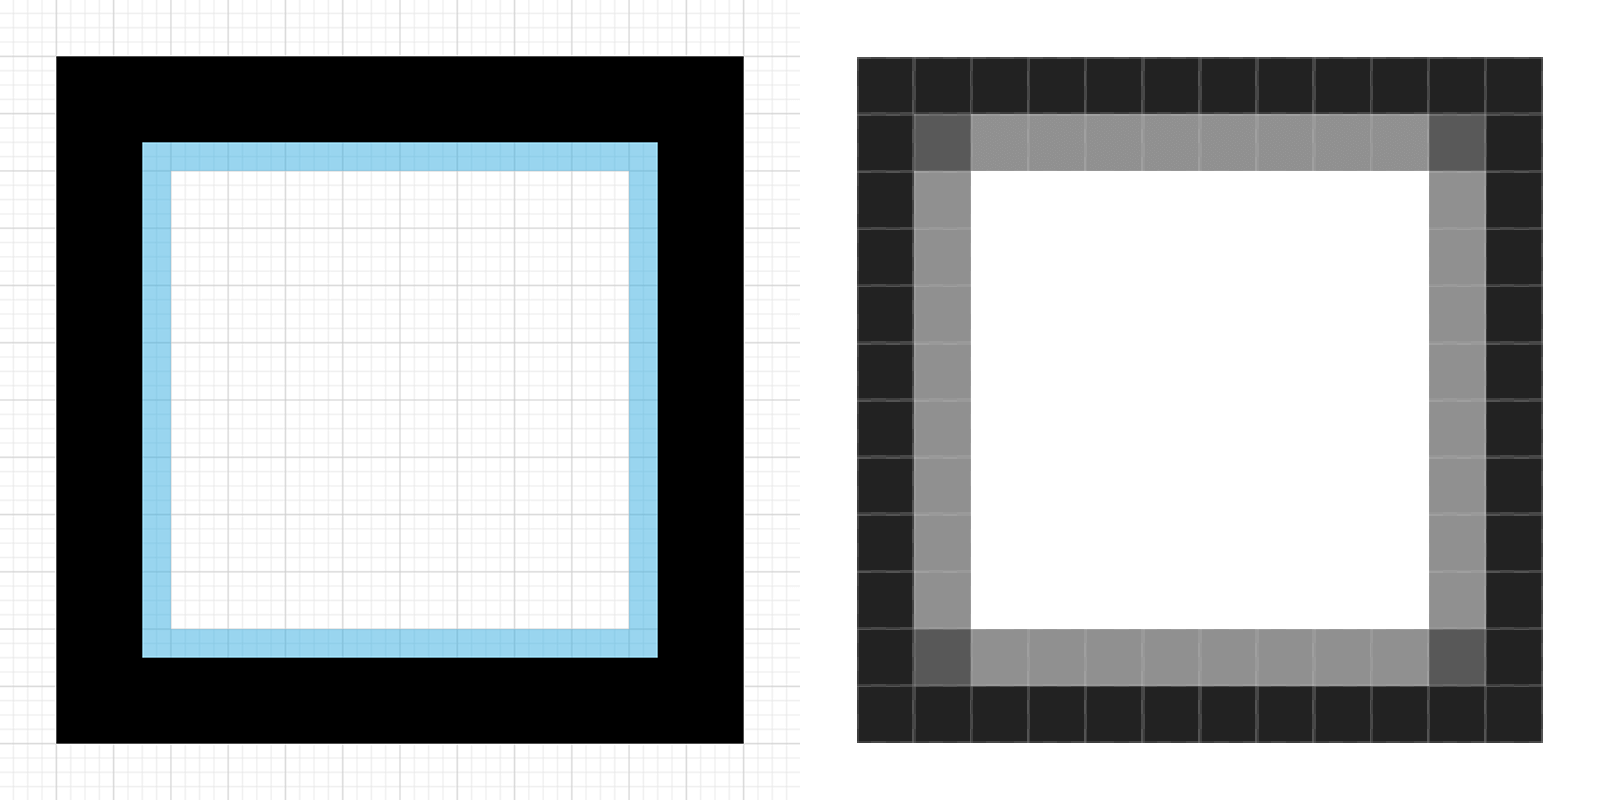 Vector design offset by a half-pixel on the inside, causing blurred pixels on the inner border.